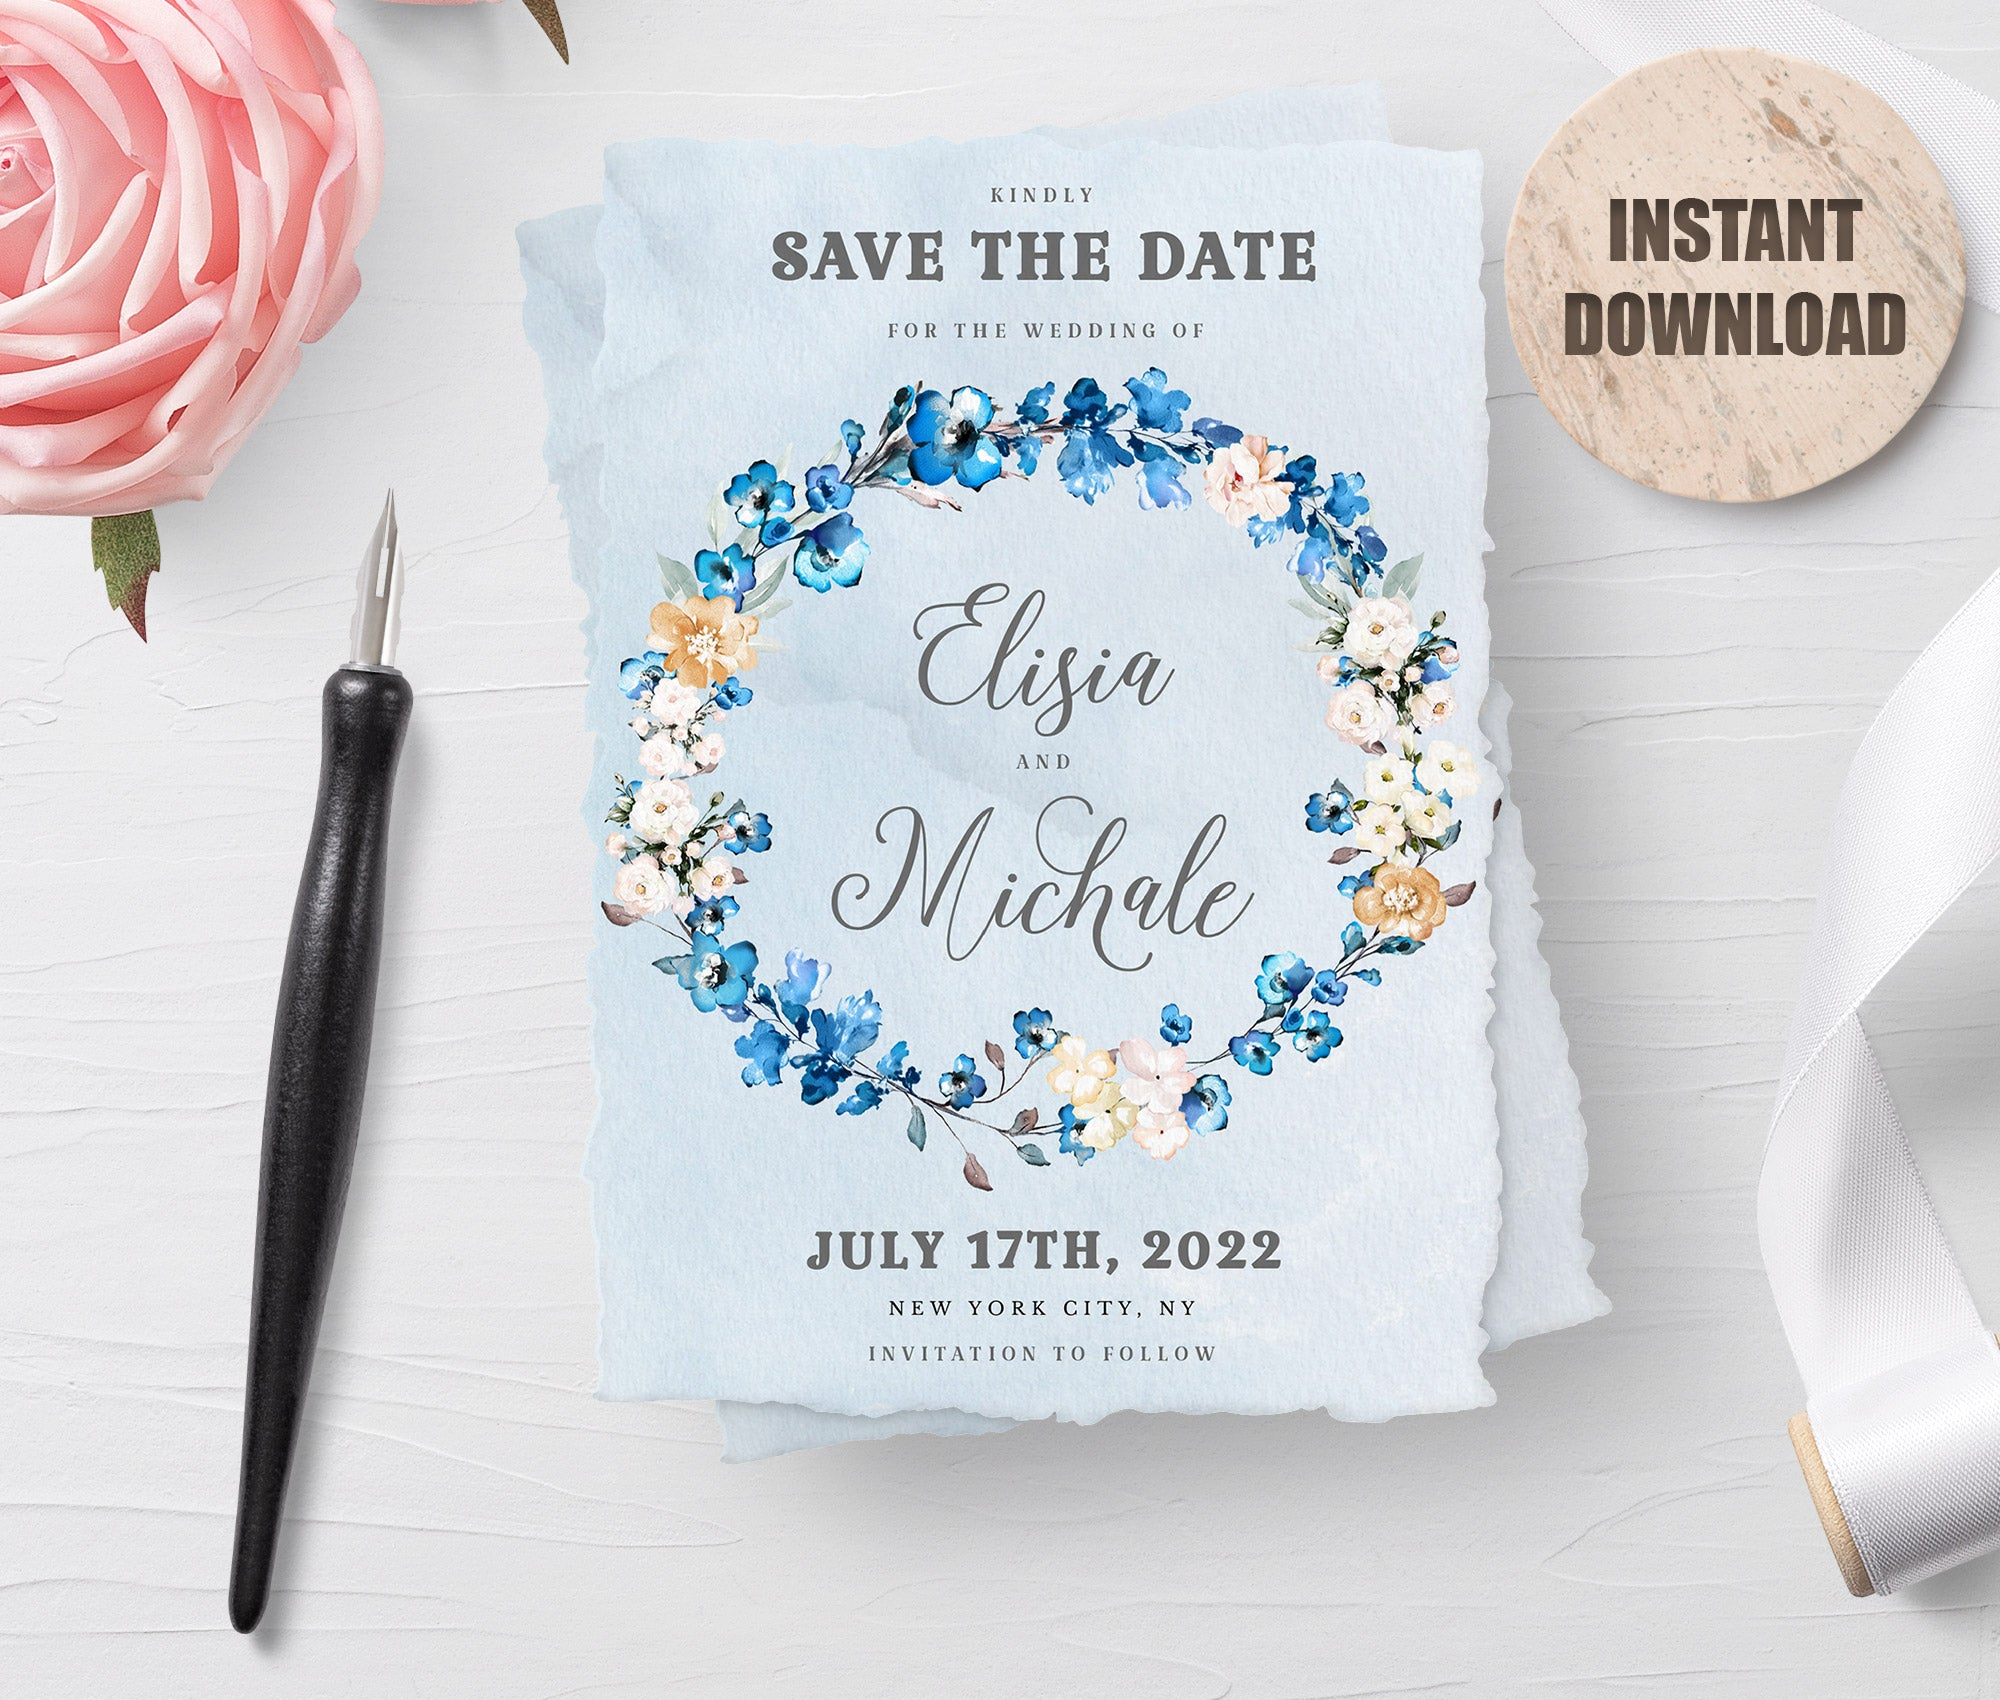 MELLY - Printable Save the Date Card 2